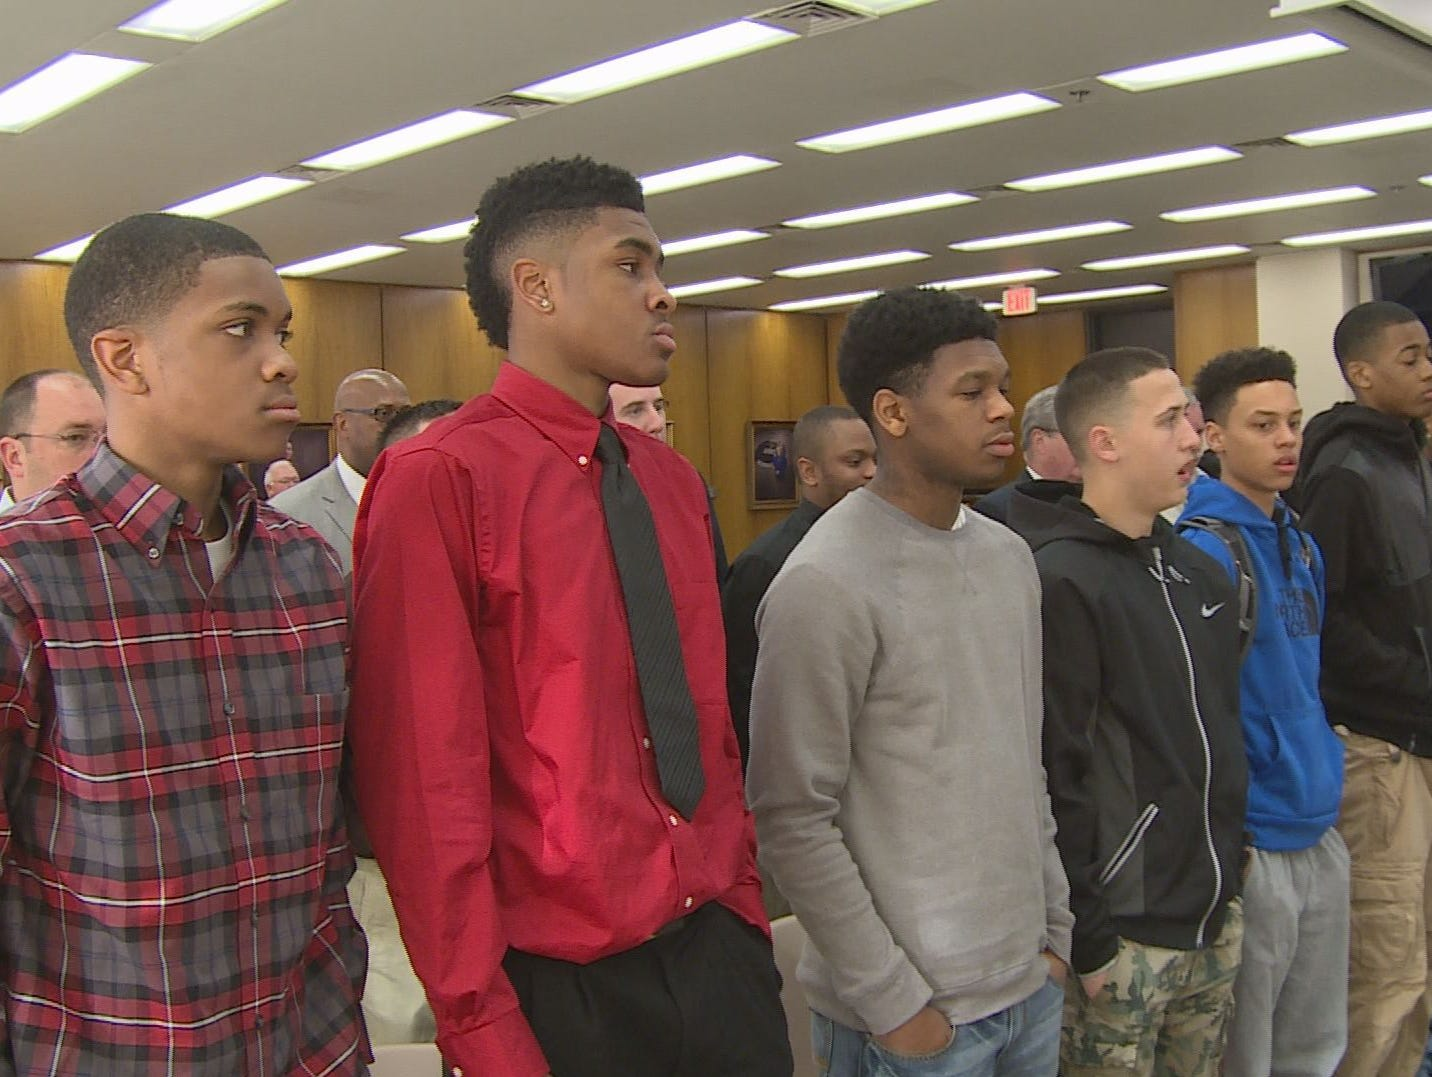 Godwin Heights basketball at Kent Co. Commission meeting - 5/14/15